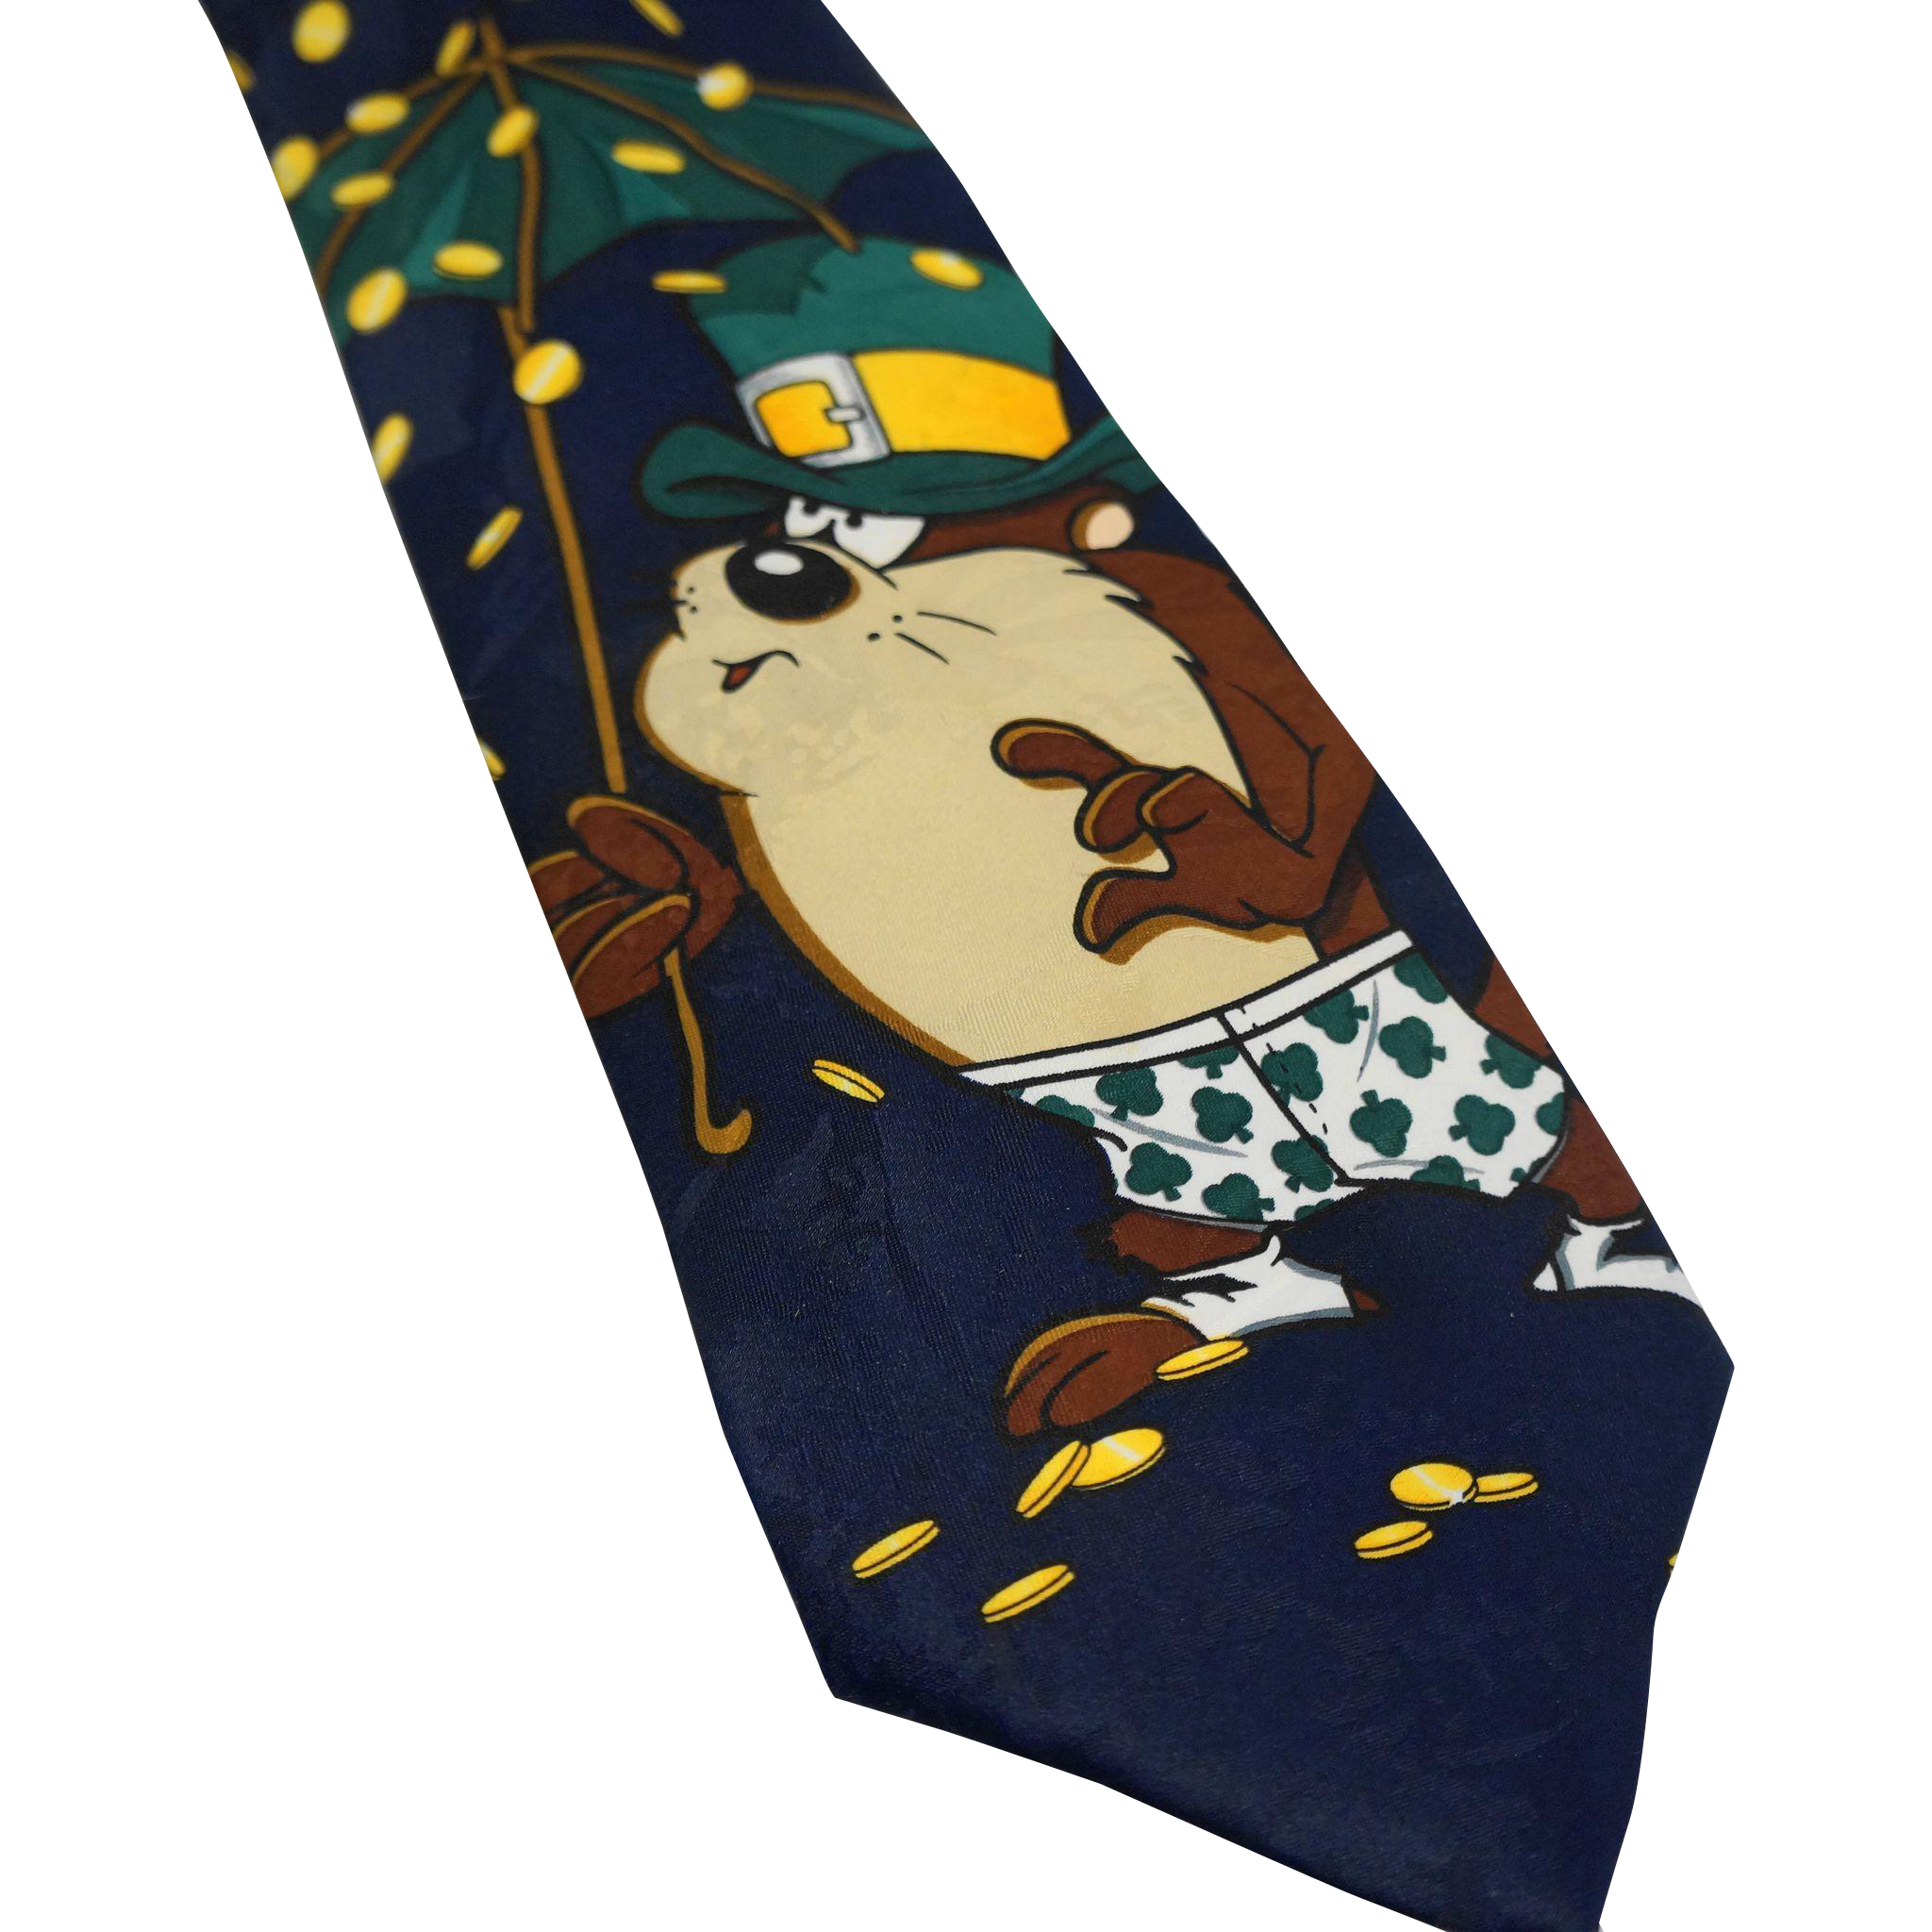 Taz Tasmanian Devil St Patricks Day Tie Silk Warner Bros 1996